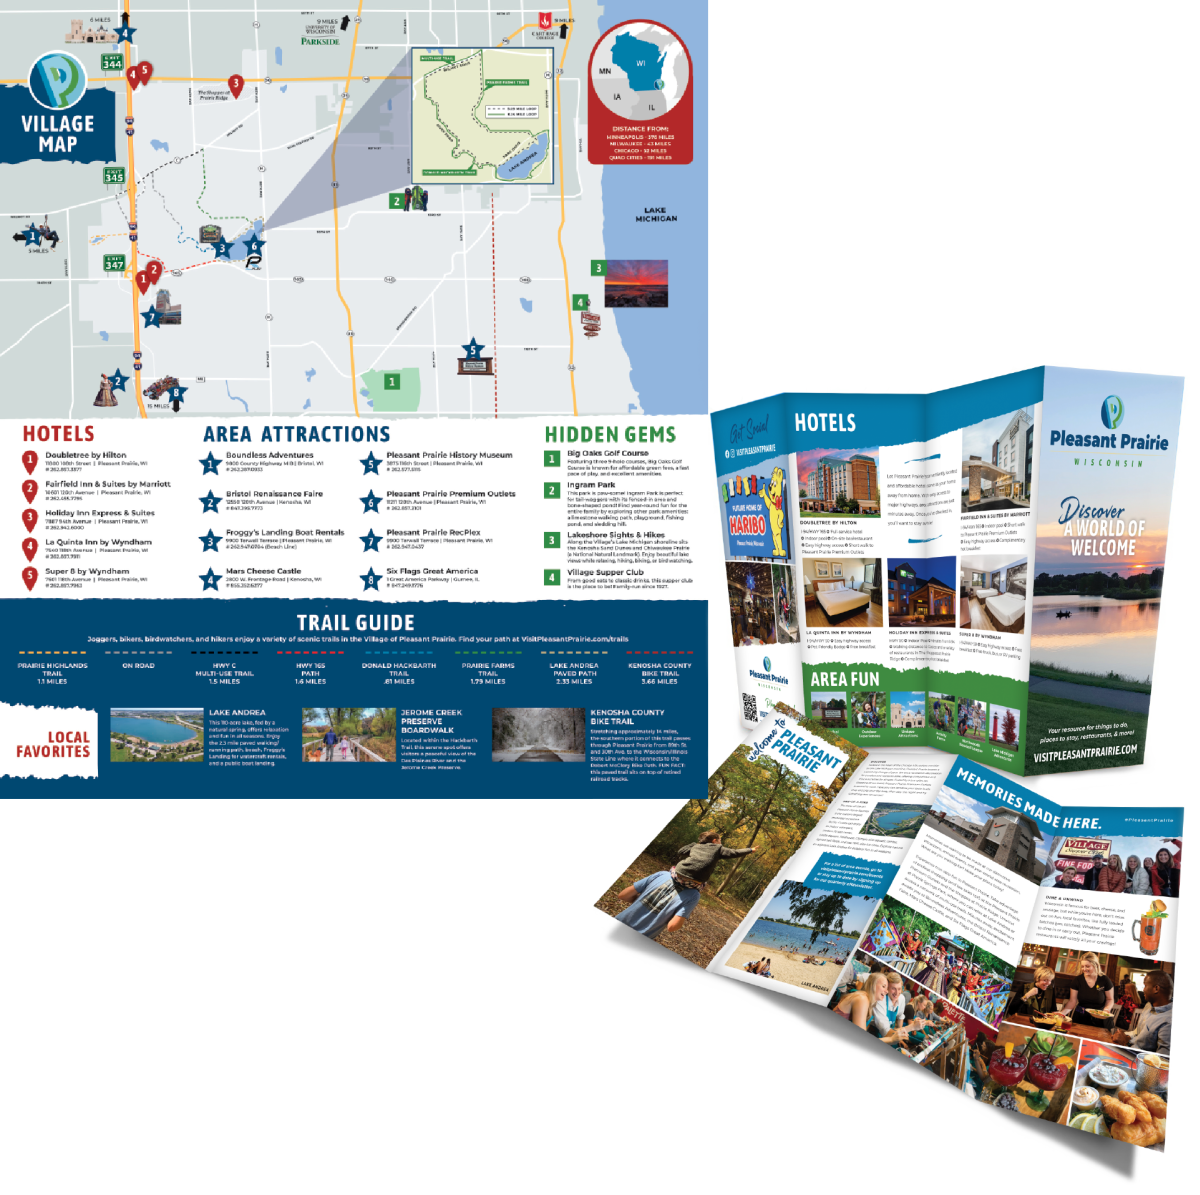 2021 Mini Guide Map With Attractions, Trails, & More